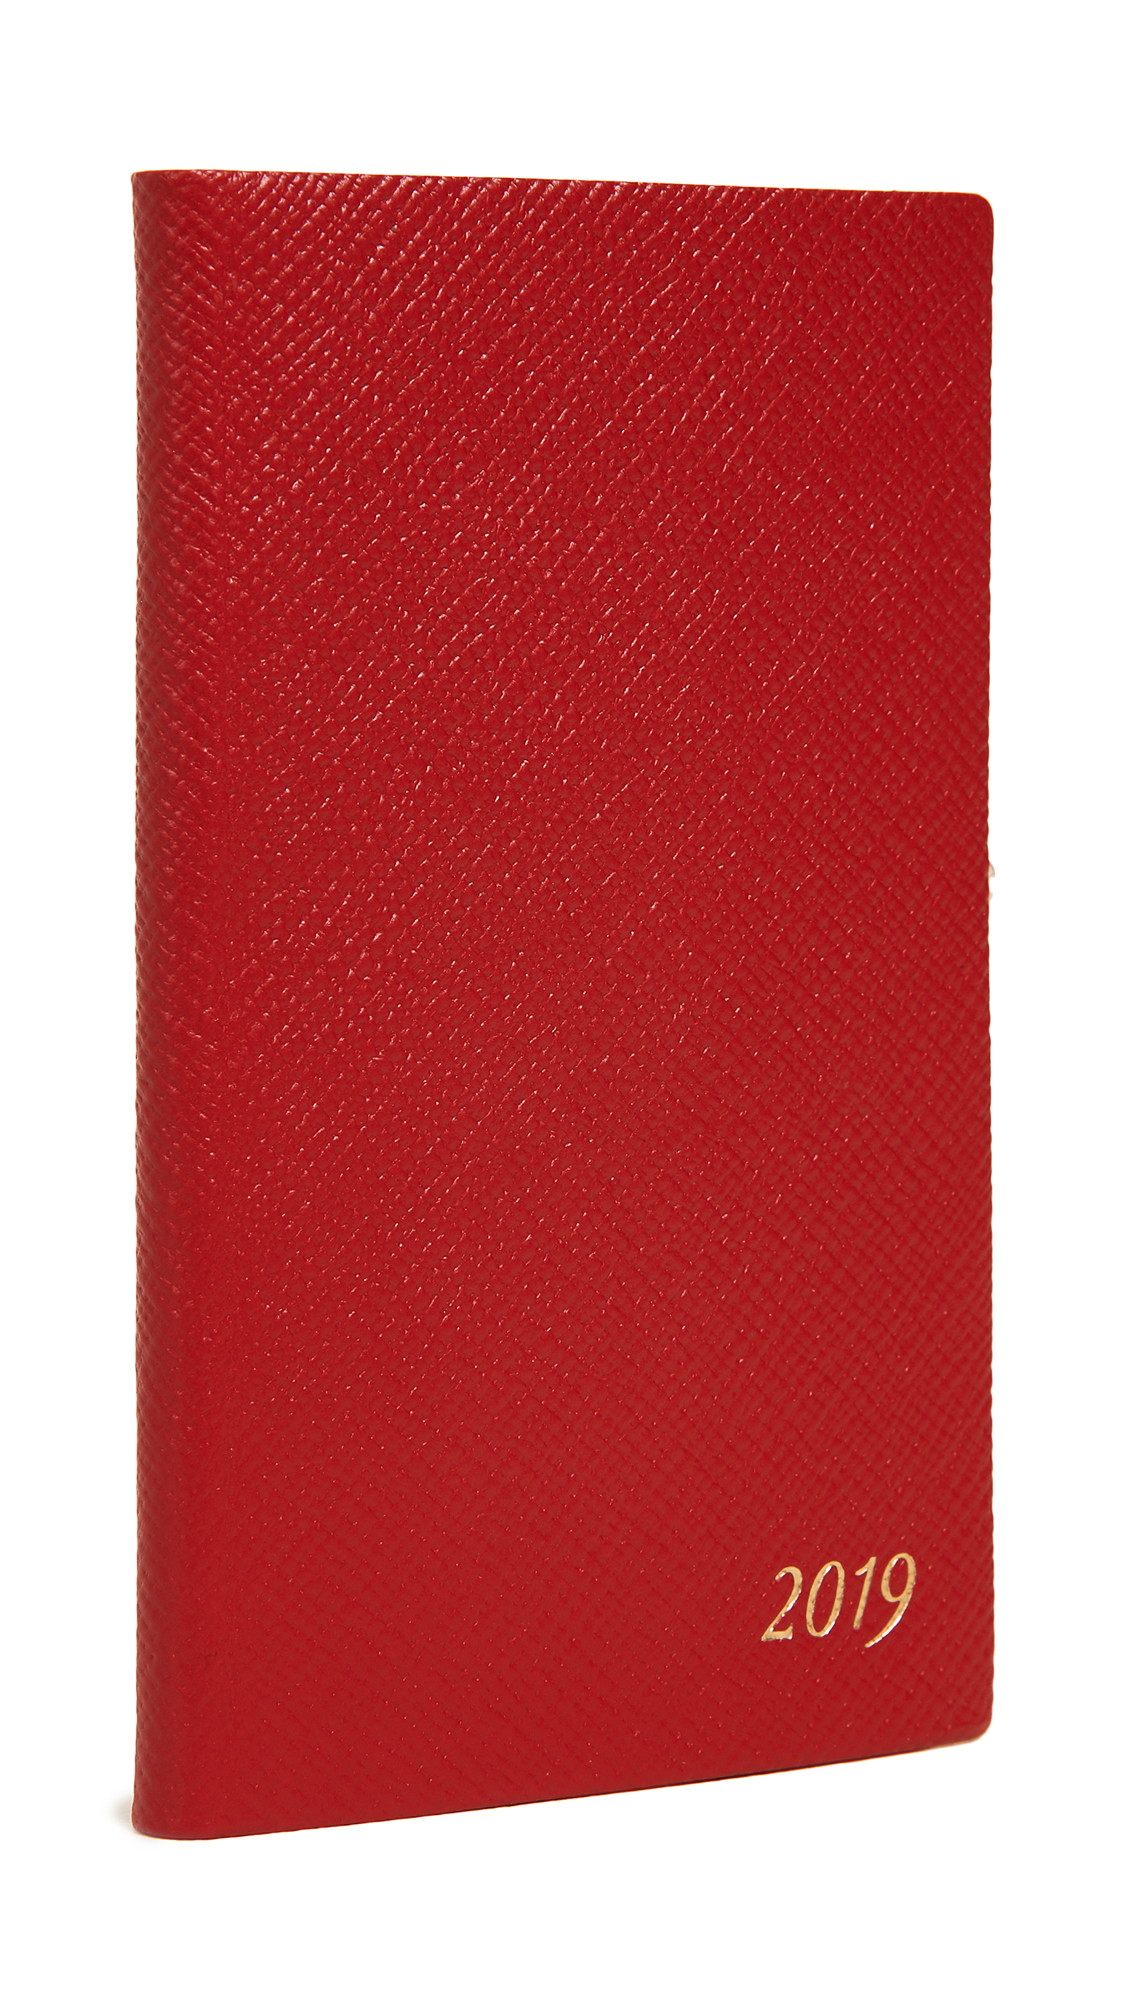 2019 Diary Panama Notebook in Red